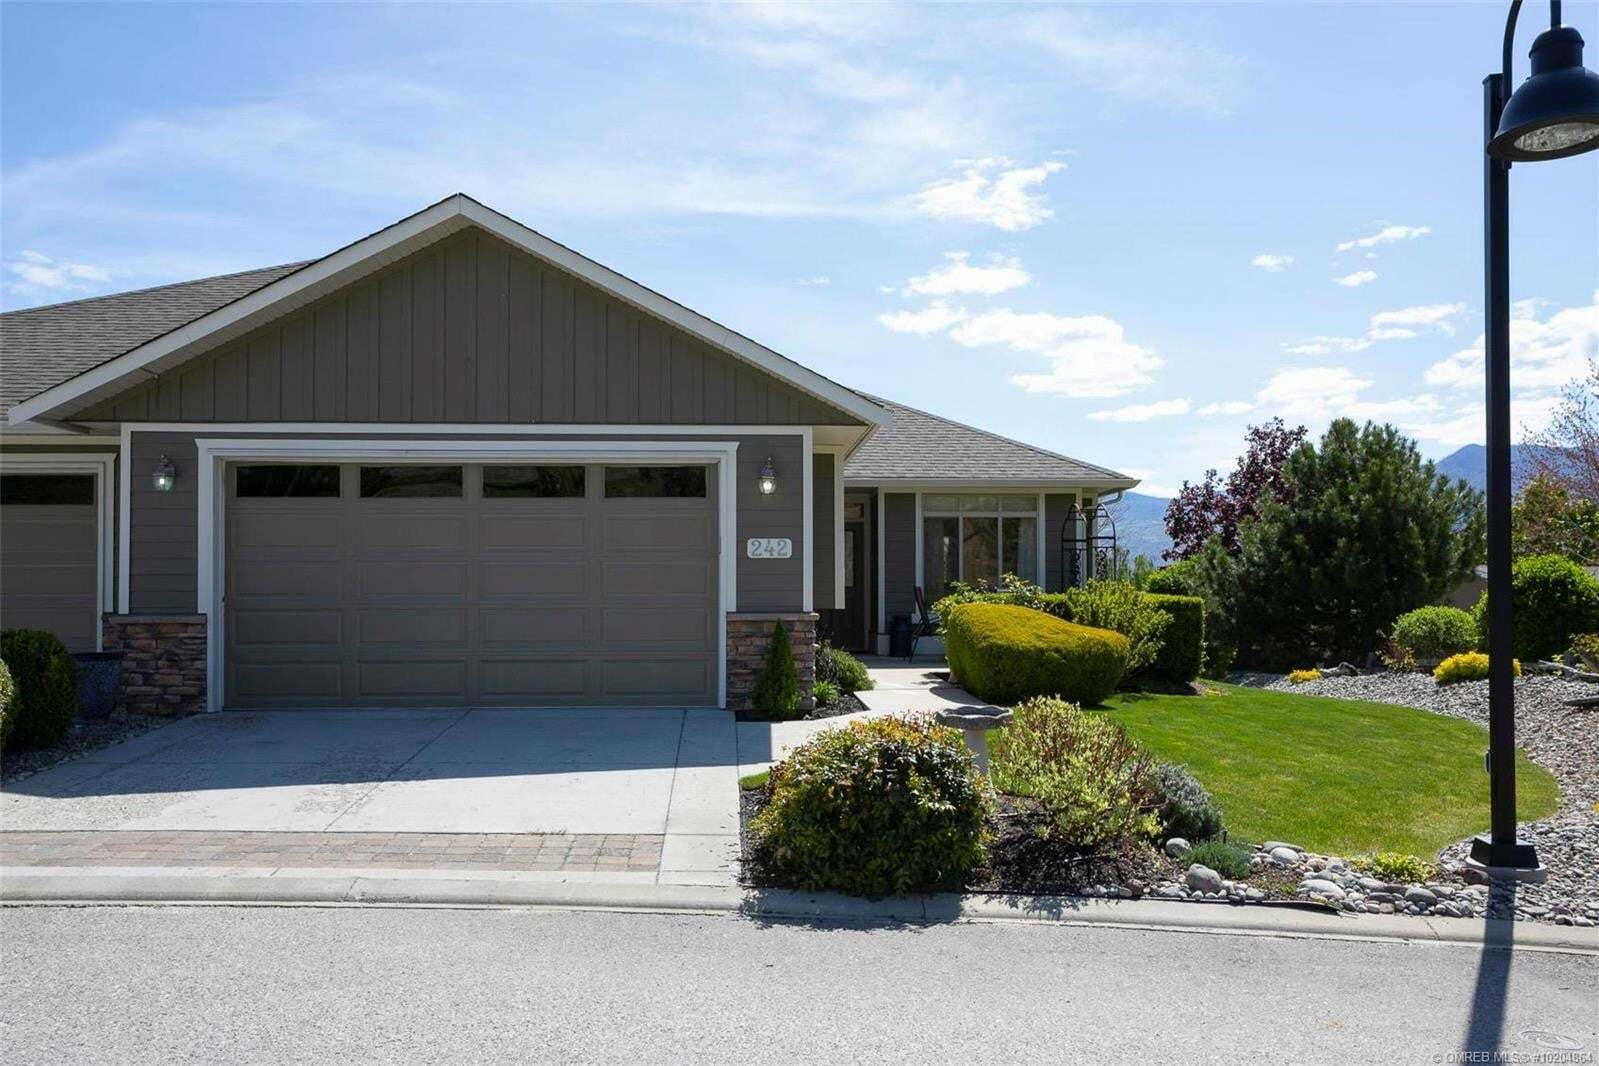 Townhouse for sale at 4035 Gellatly Rd South West Kelowna British Columbia - MLS: 10204864